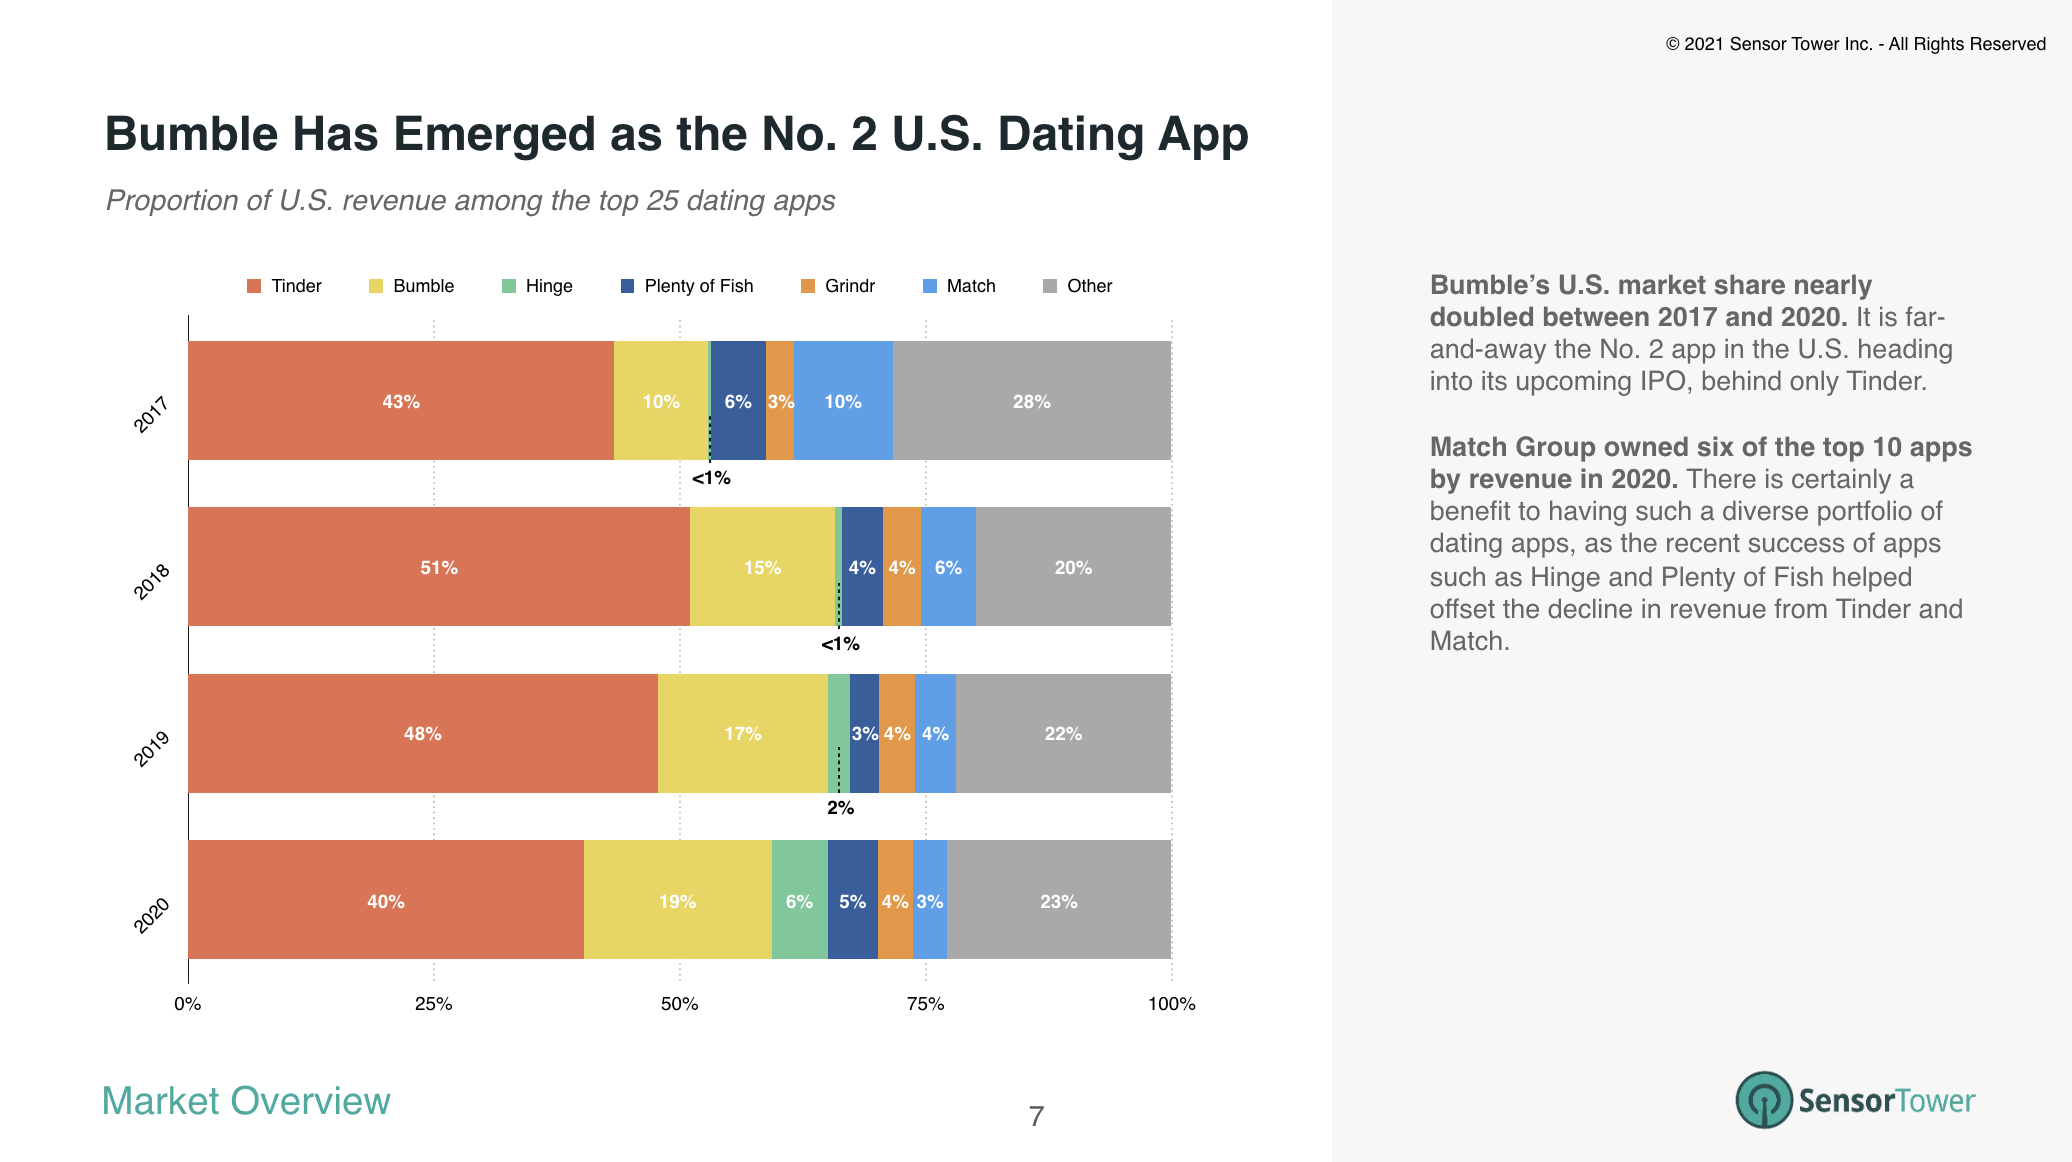 Bumble's market share of revenue in 2020 was nearly double that of 2017